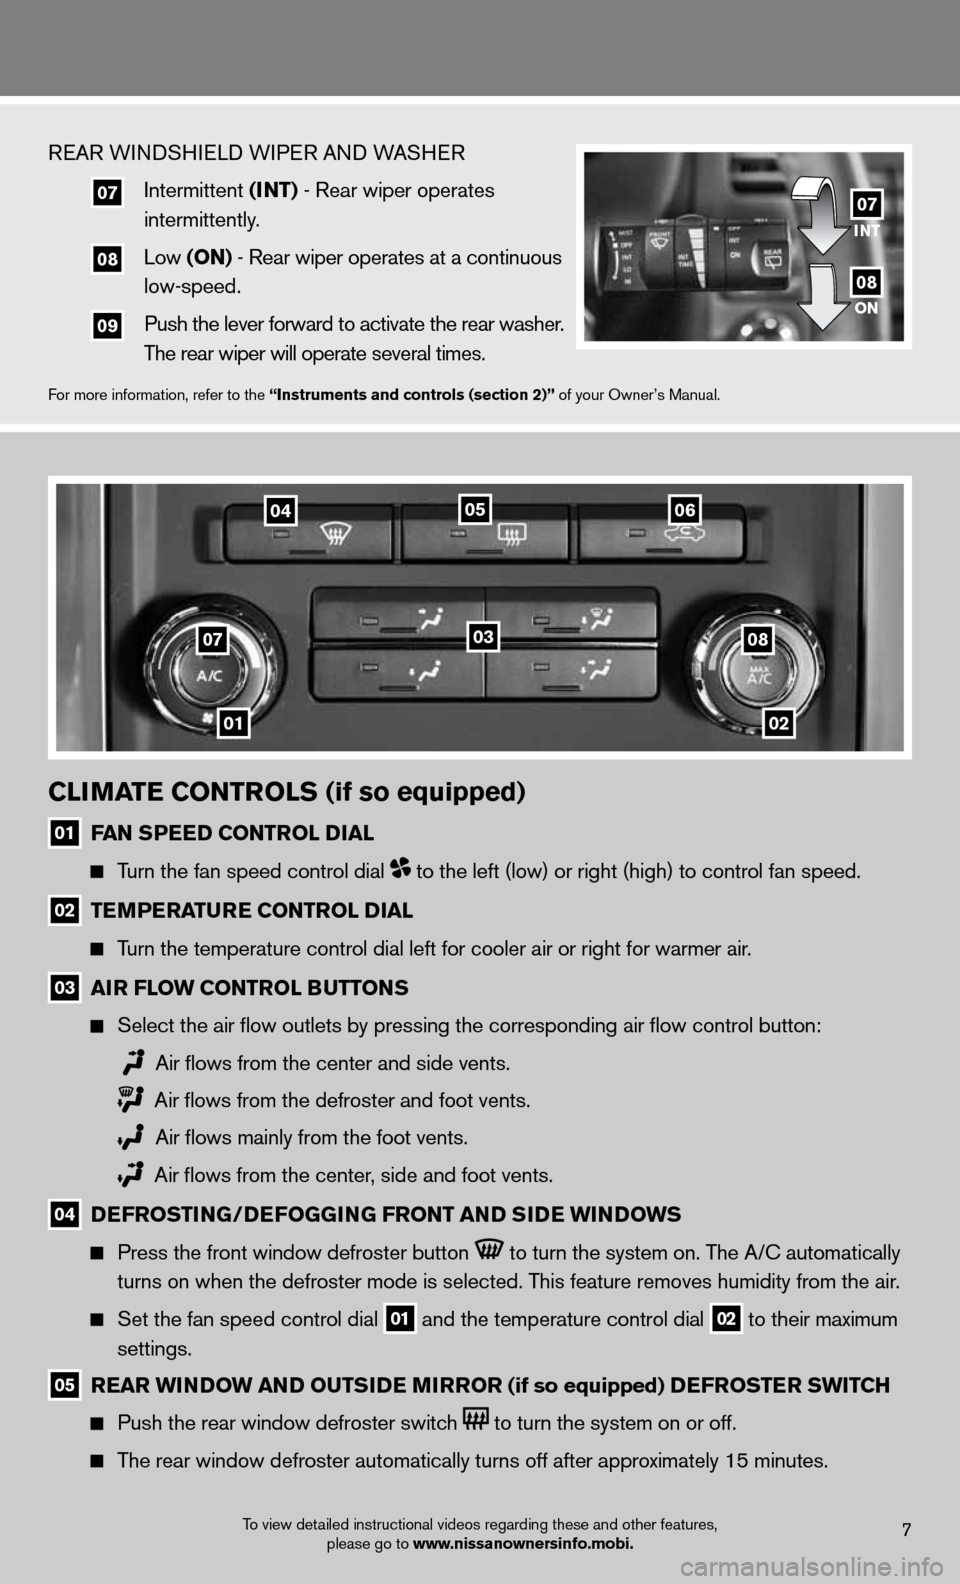 NISSAN XTERRA 2012 N50 / 2.G Quick Reference Guide 01 07 02 08 04 03 0506 ClimatE Controls (if so equipped) 01 fan s PEED Control D ial      Turn the fan speed control dial  to the left (low) or right (high) to control fan speed.   02 tE mPE ratur E C